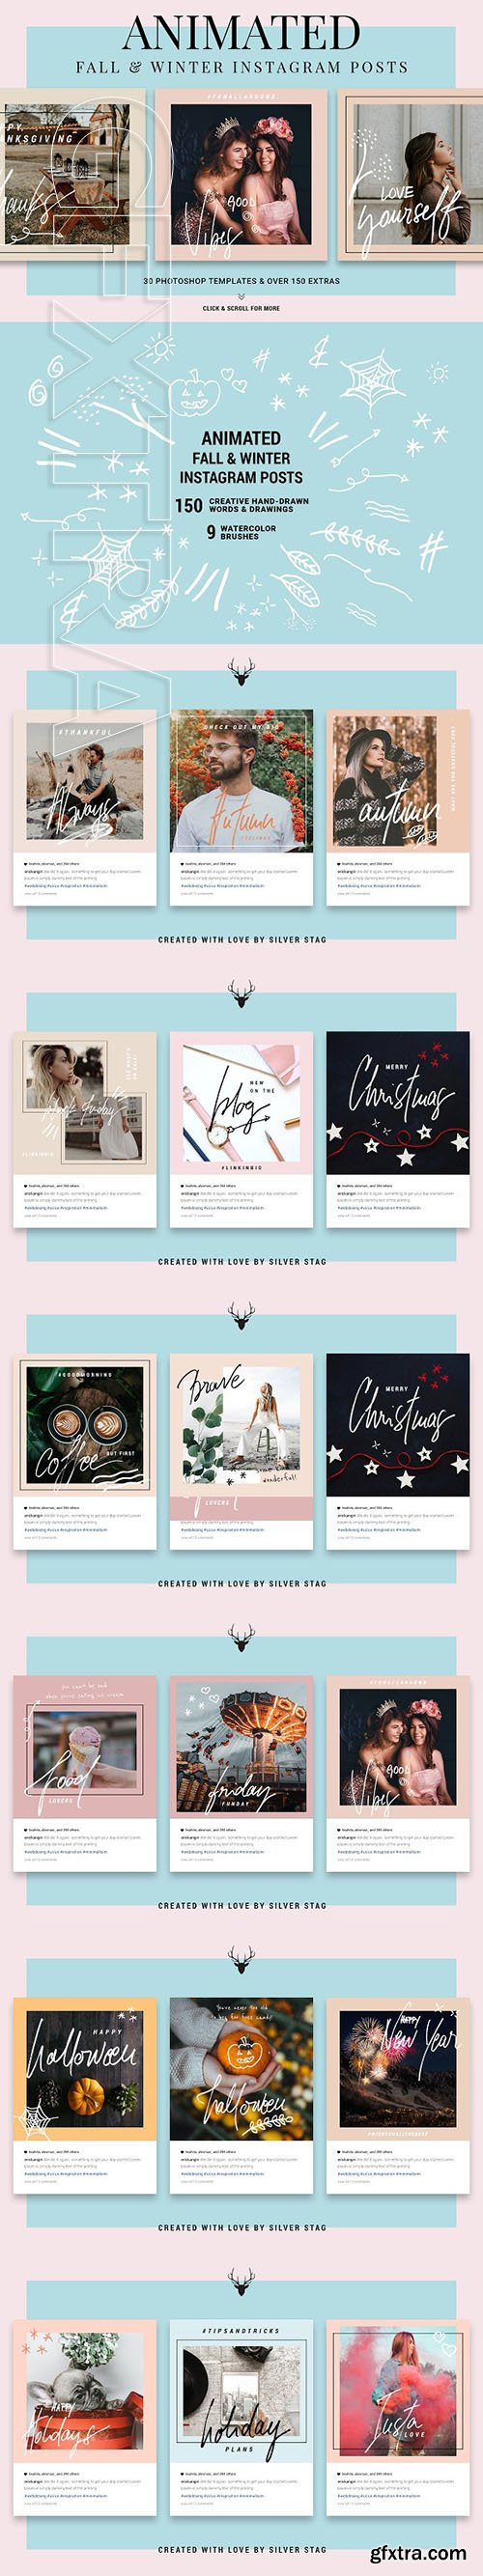 CreativeMarket - Holiday ANIMATED Instagram Posts 2933991